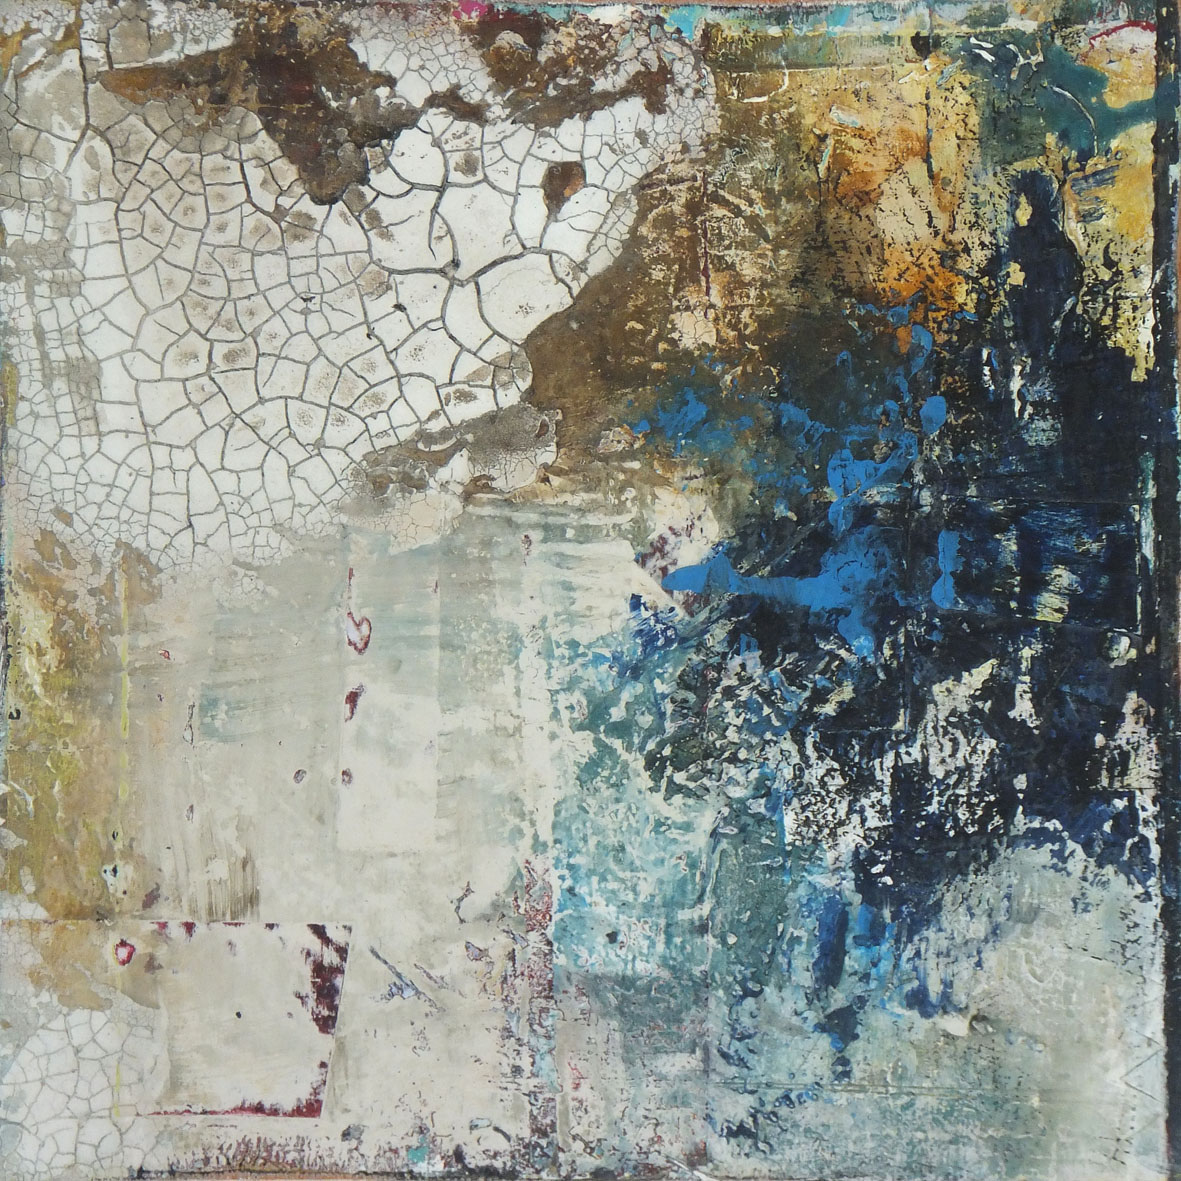 """<span class=""""link fancybox-details-link""""><a href=""""/artists/66-joanne-last/works/6990-joanne-last-weathered-10-2020/"""">View Detail Page</a></span><div class=""""artist""""><strong>Joanne Last</strong></div> <div class=""""title""""><em>Weathered 10</em>, 2020</div> <div class=""""signed_and_dated"""">signed on back</div> <div class=""""medium"""">Acrylic on board</div> <div class=""""dimensions"""">h. 40 x w. 40 cm </div><div class=""""price"""">£650.00</div><div class=""""copyright_line"""">Ownart: £65 x 10 Months, 0% APR</div>"""